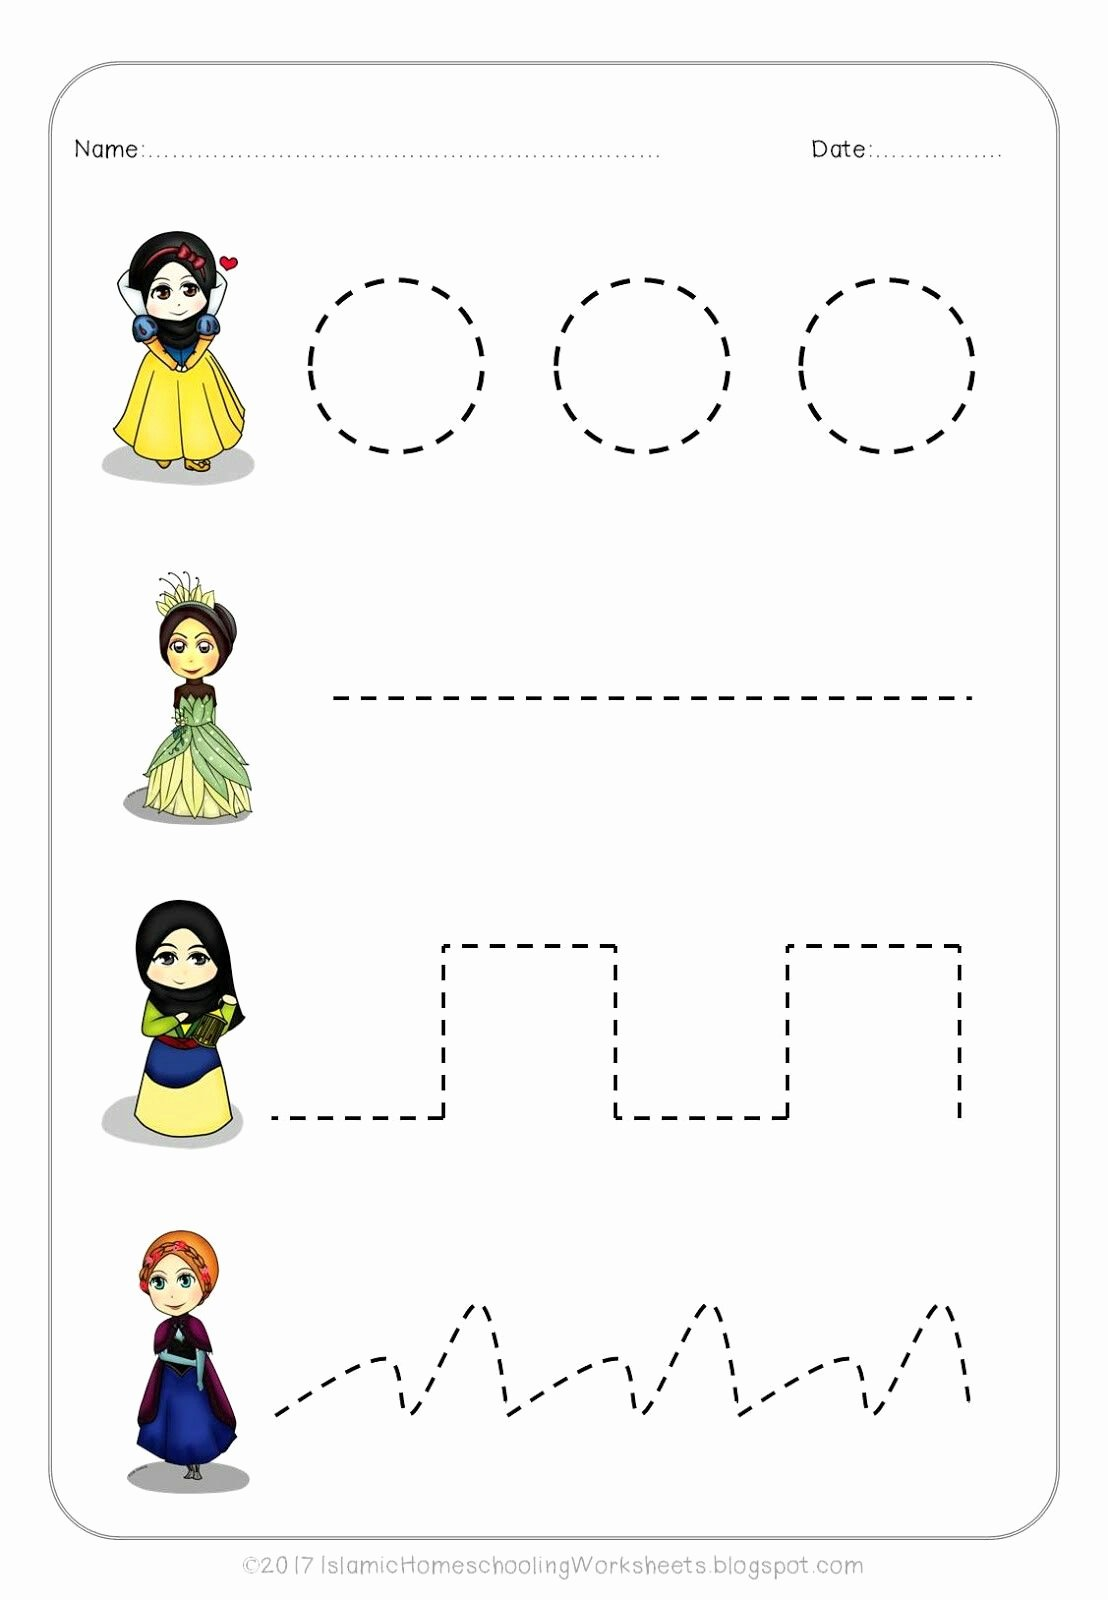 Free Disney Worksheets for Preschoolers Printable Amazing Disney Preschool Worksheets Free Printables